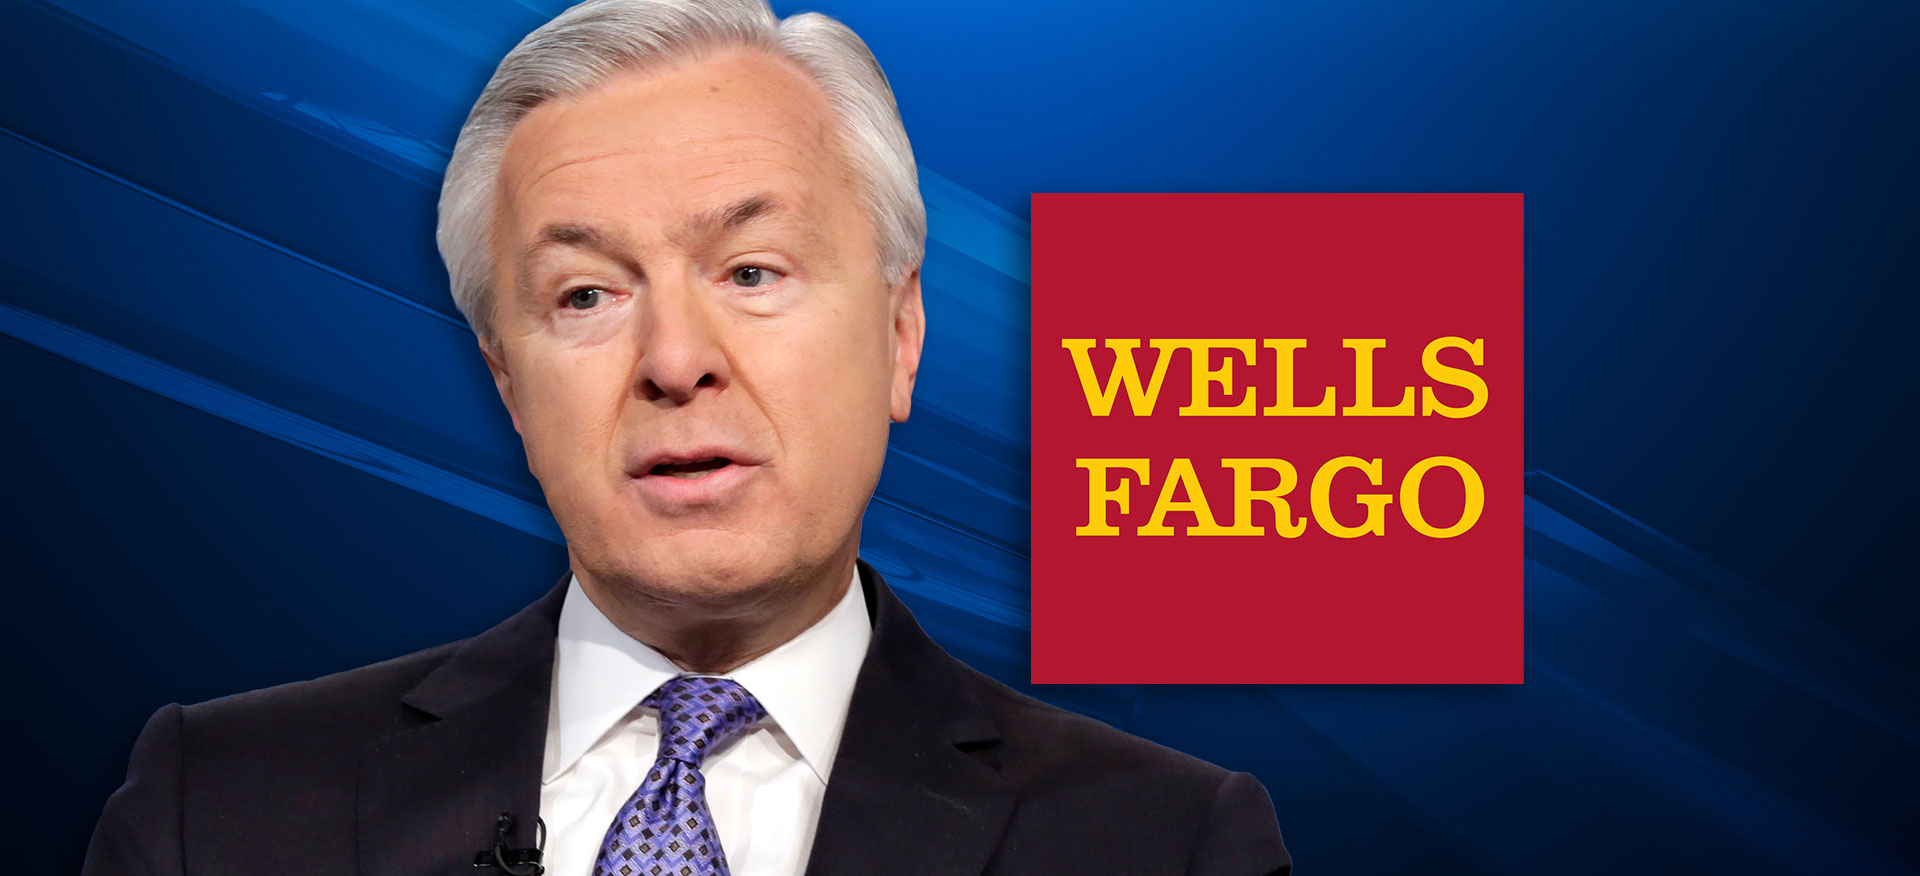 While literally committing fraud against millions of people. This John Stumpf is being punished by being forced to walk away with only a few million dollars, how harsh.